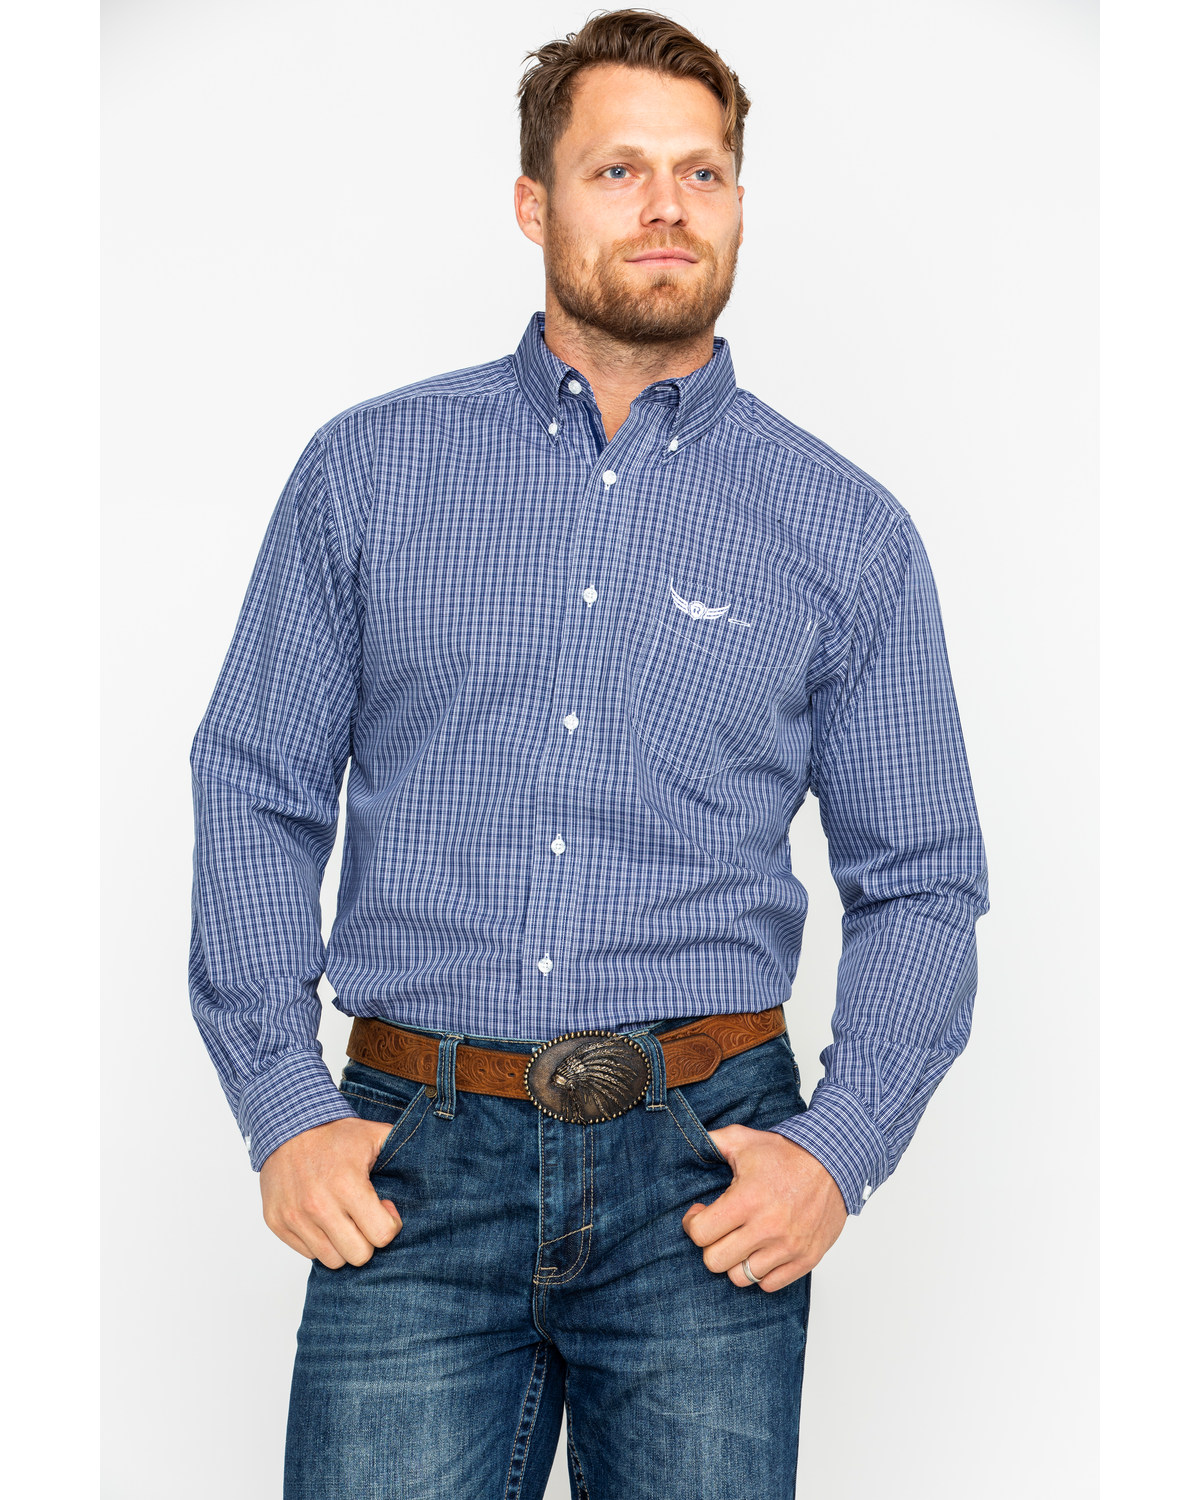 bf375cef2d9 Ariat Men s Honorable Small Plaid Long Sleeve Western Shirt